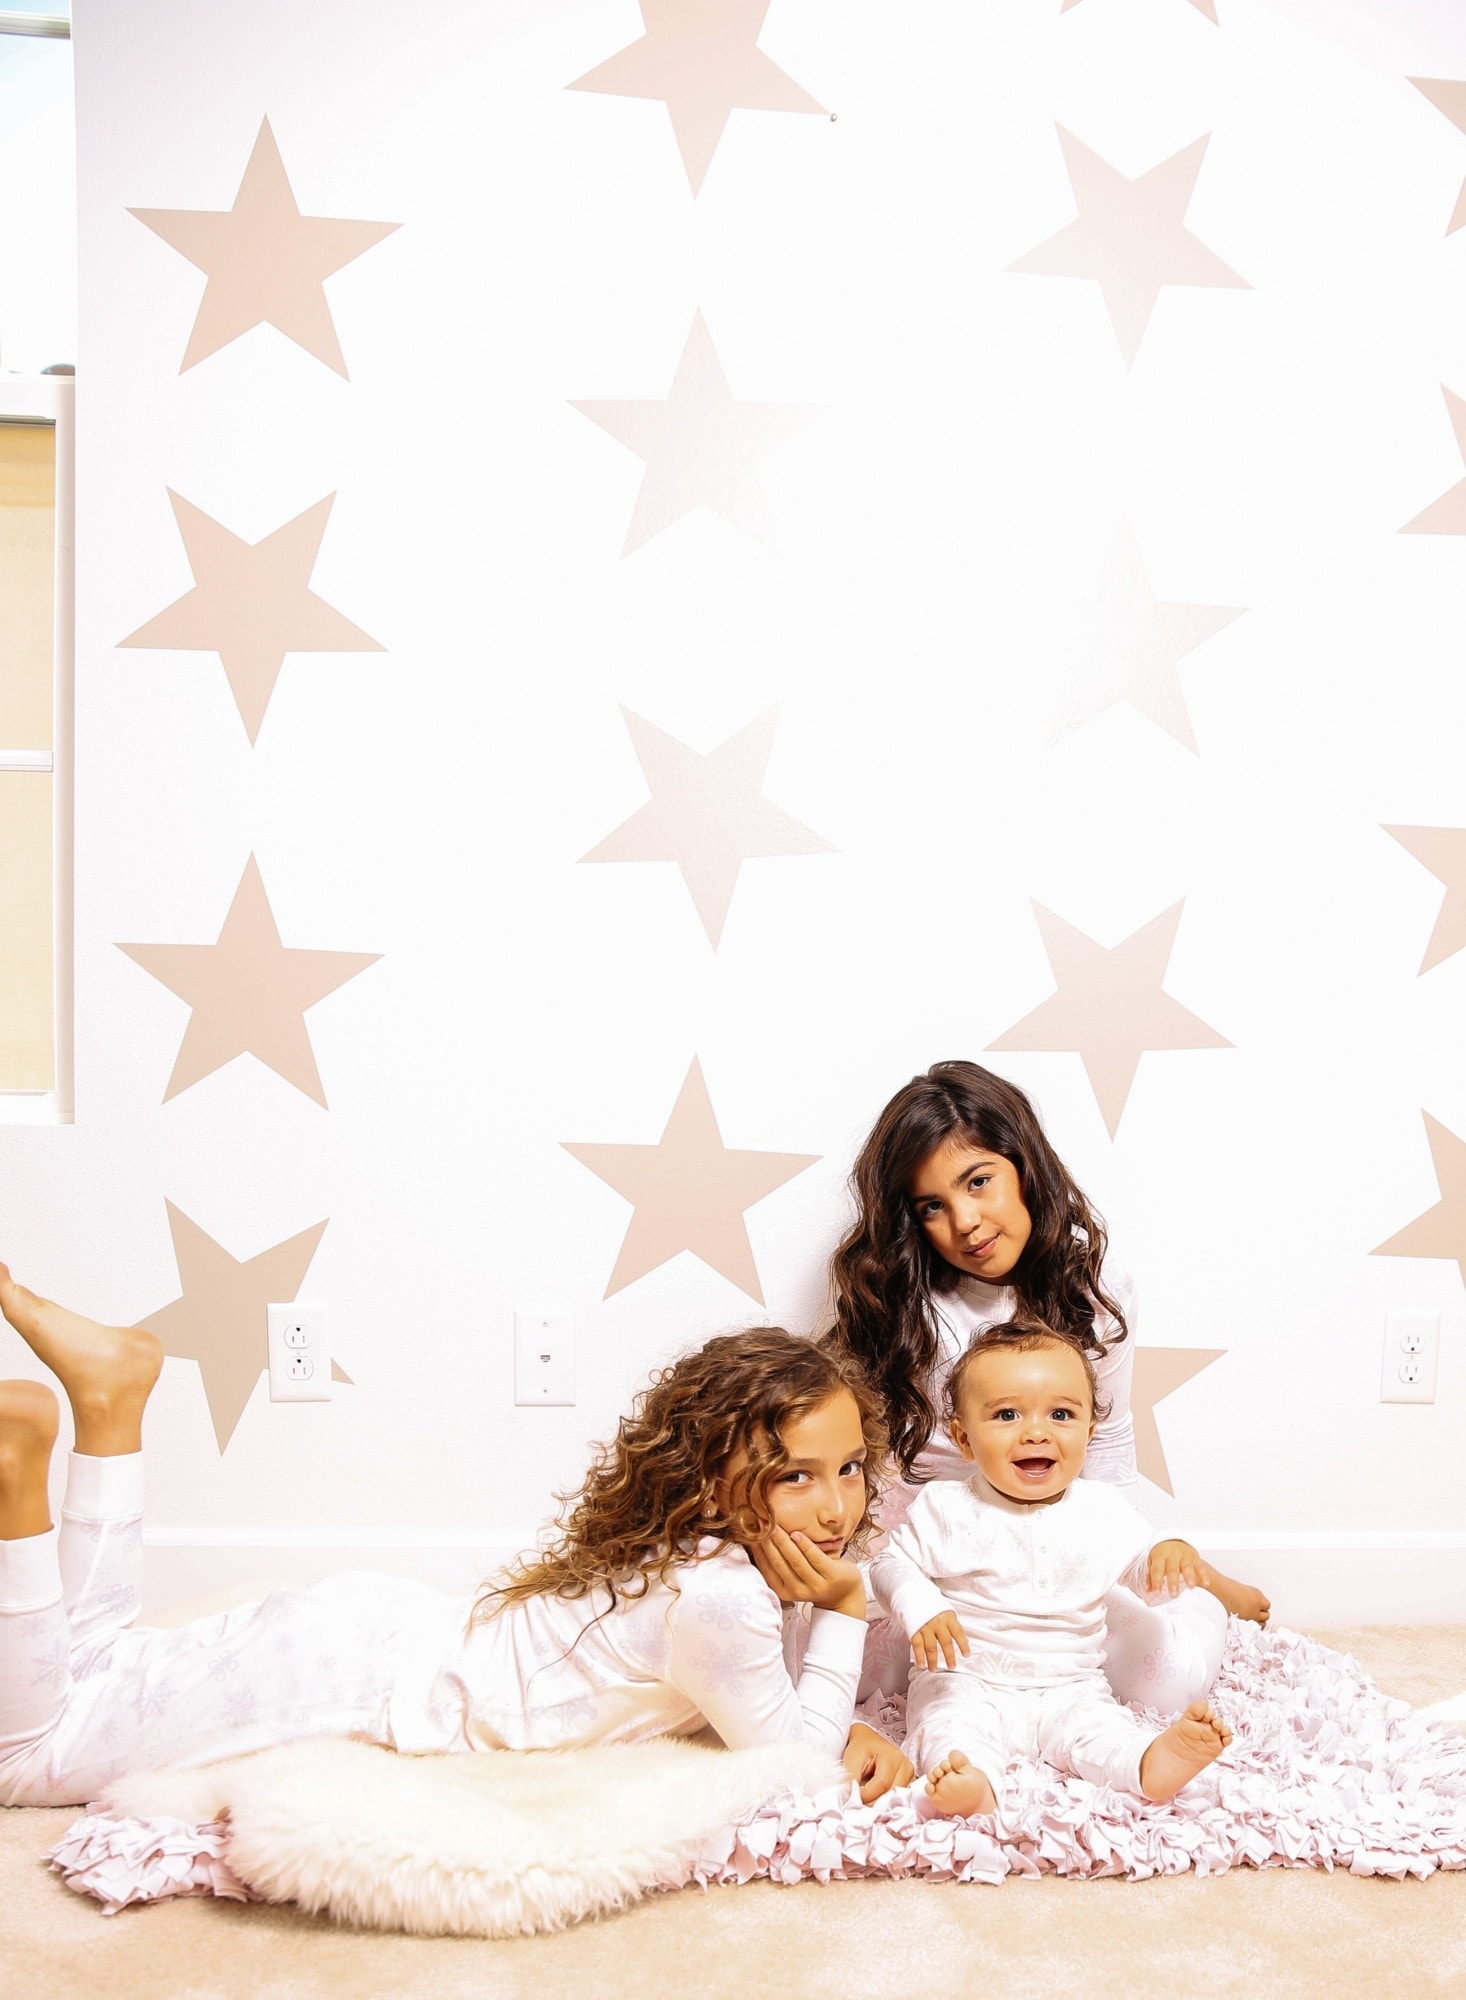 girls and baby with star background